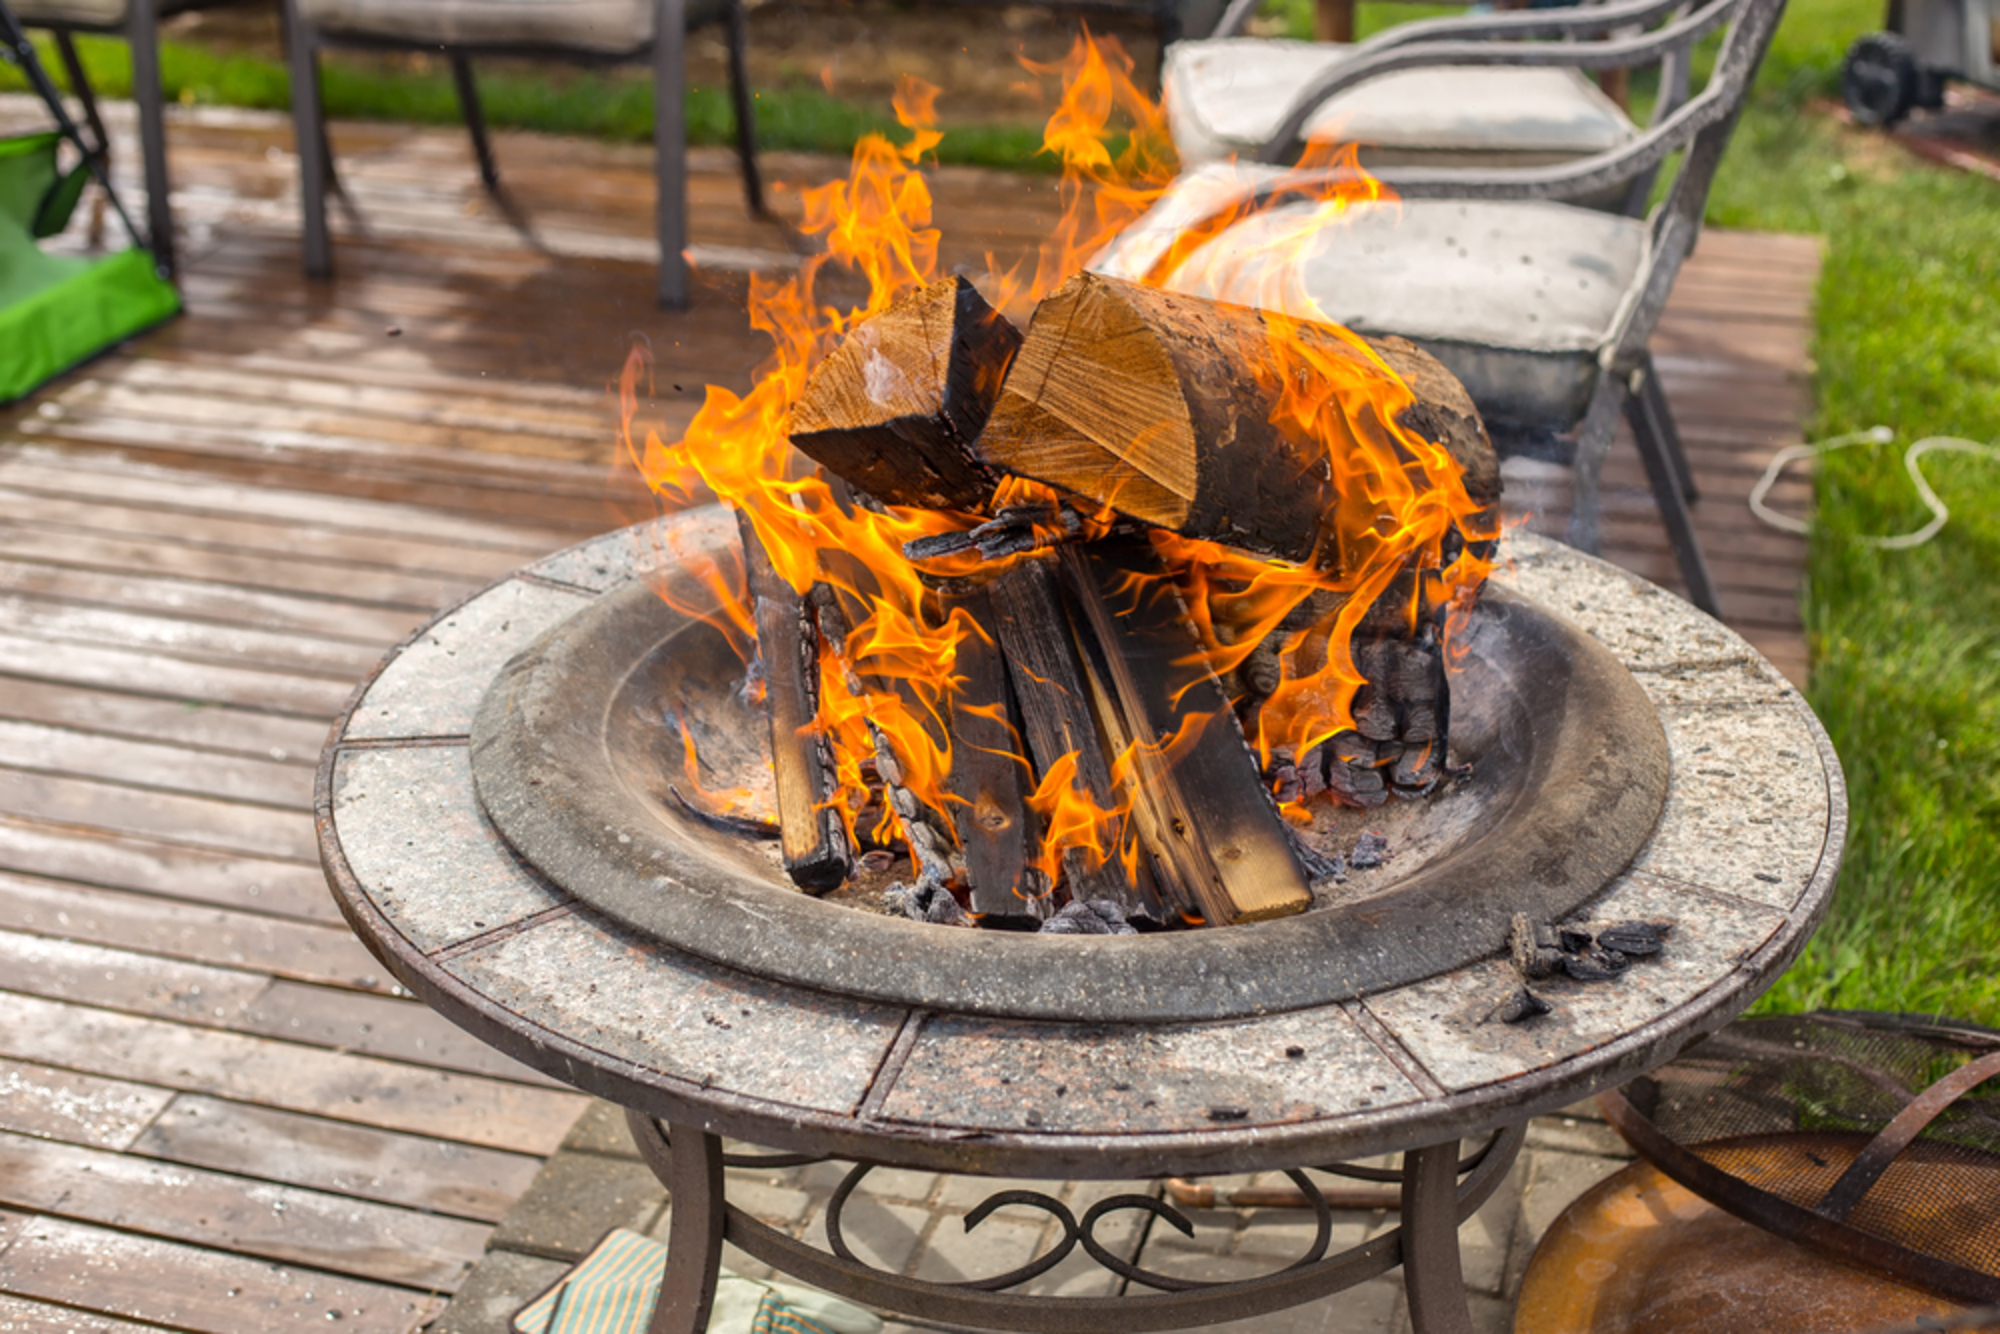 9 tips for backyard fire pit safety